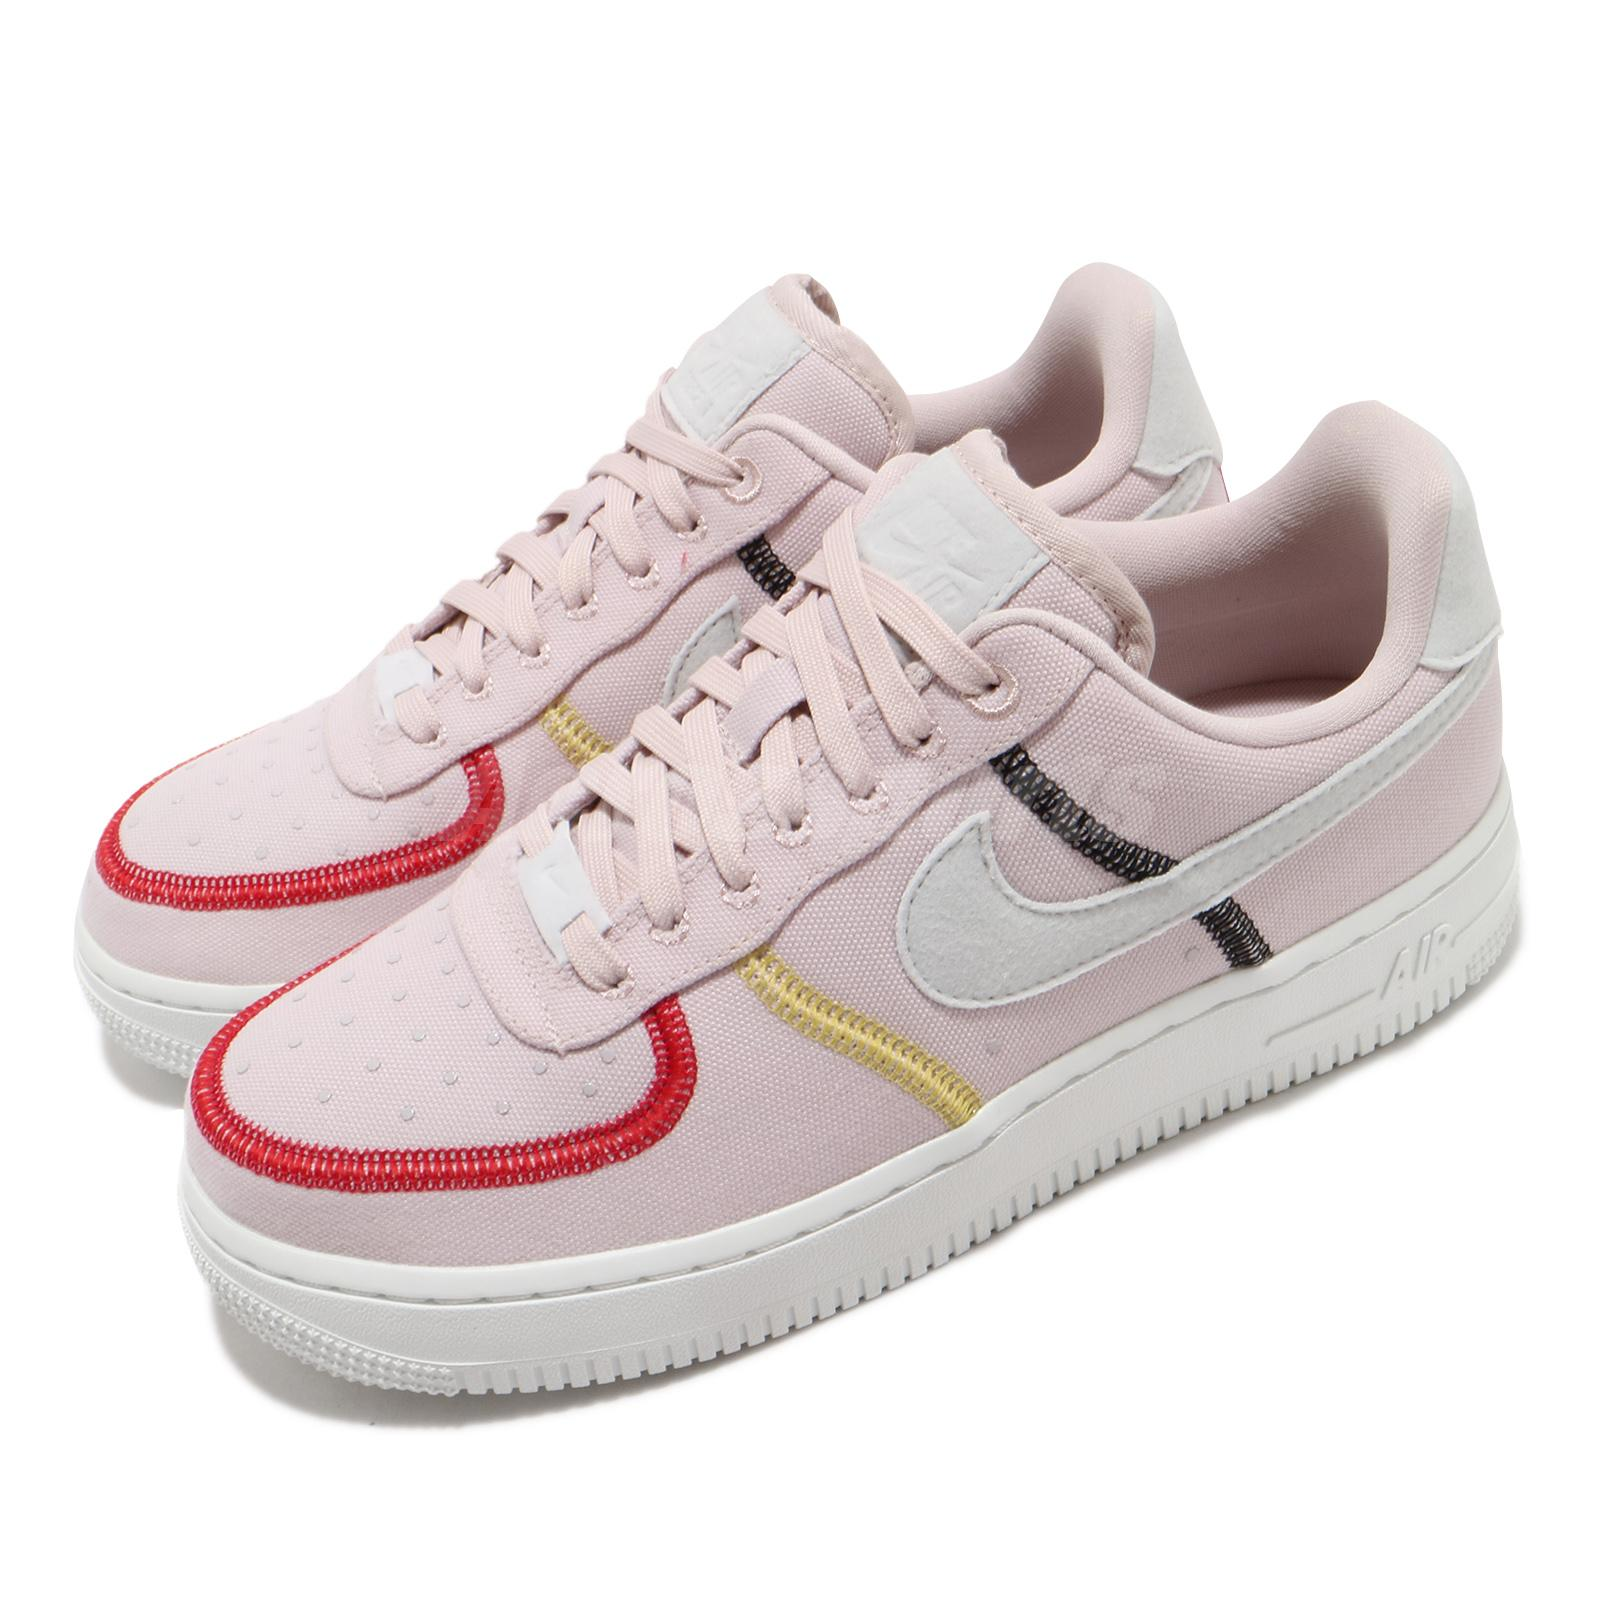 Nike Wmns Air Force 1 07 LX Silt Red